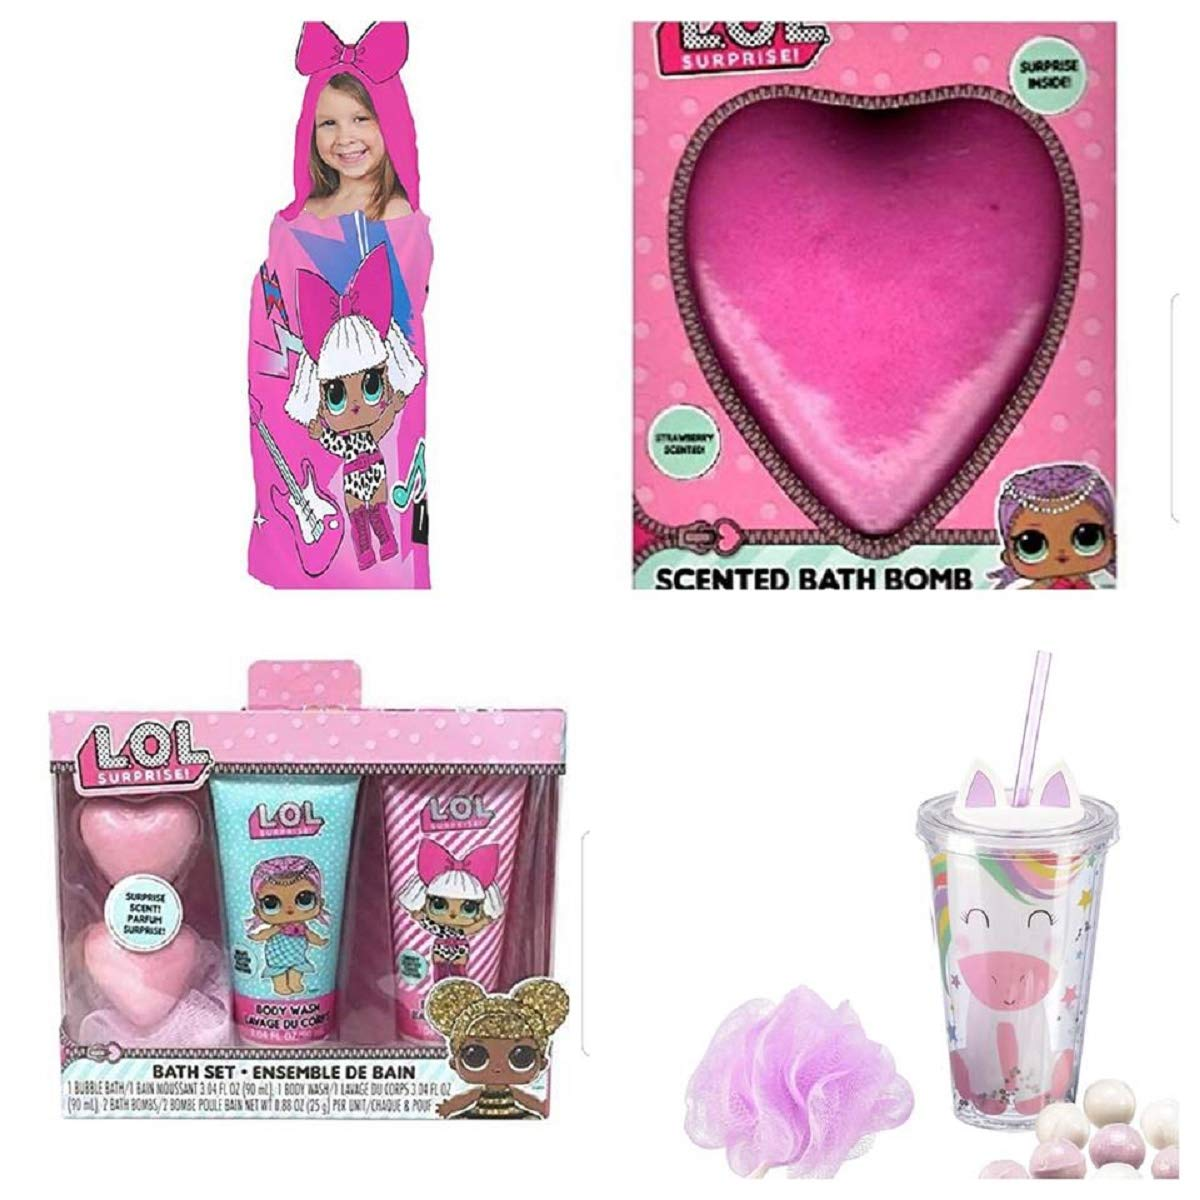 Surprise LOL Hooded Towel, Bath Set, Bath Bomb (Color Will Vary) and Unicorn Bath Tumbler